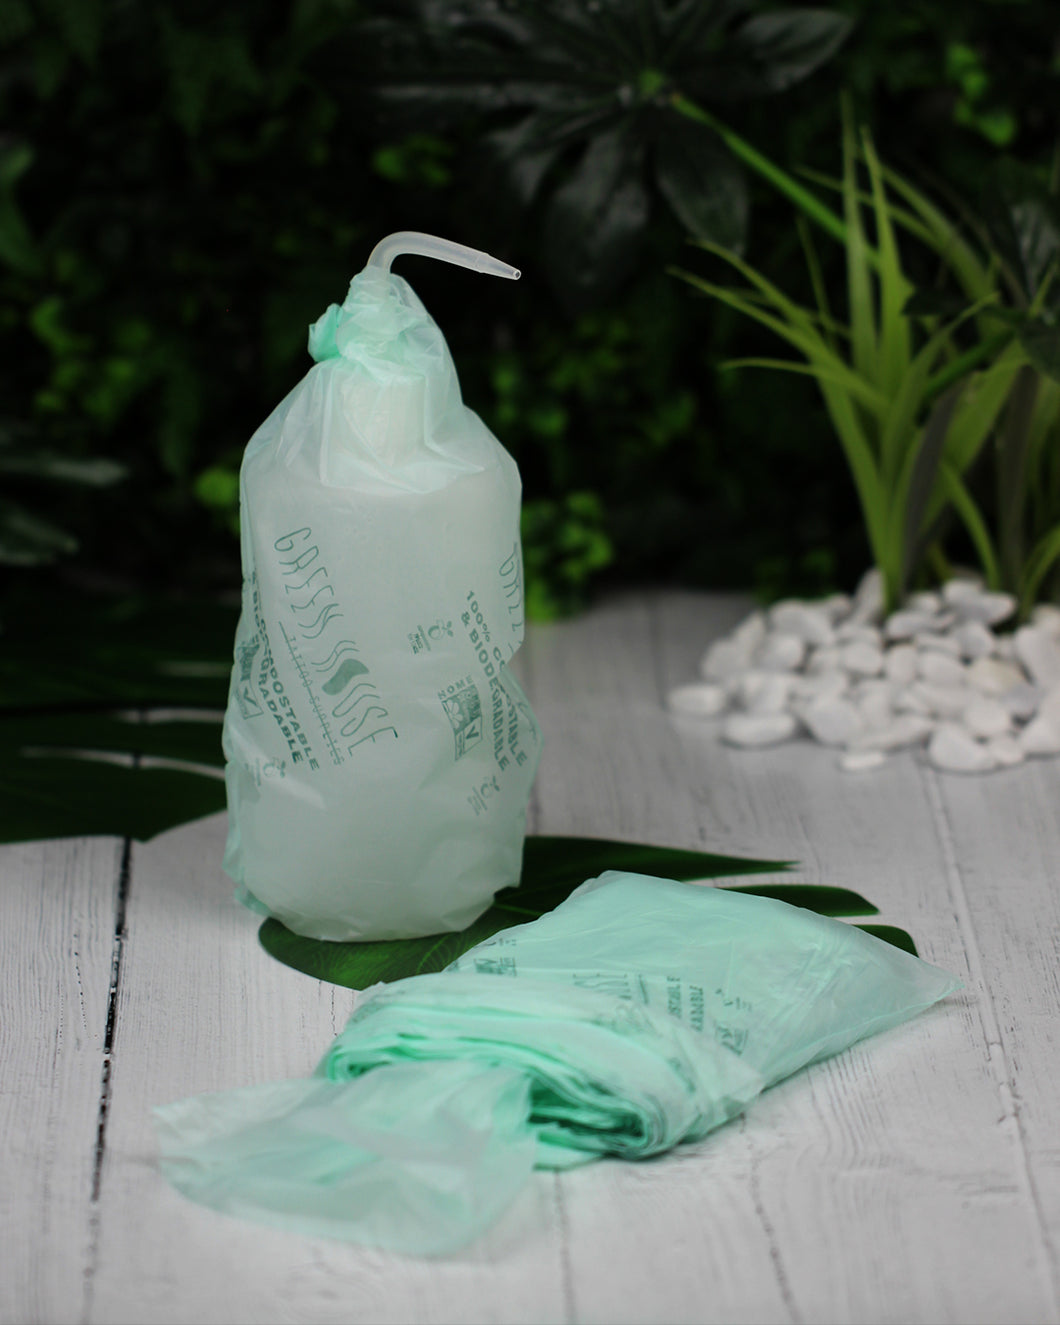 Green House Tattoo Supplies bottle bags plant based plastic free